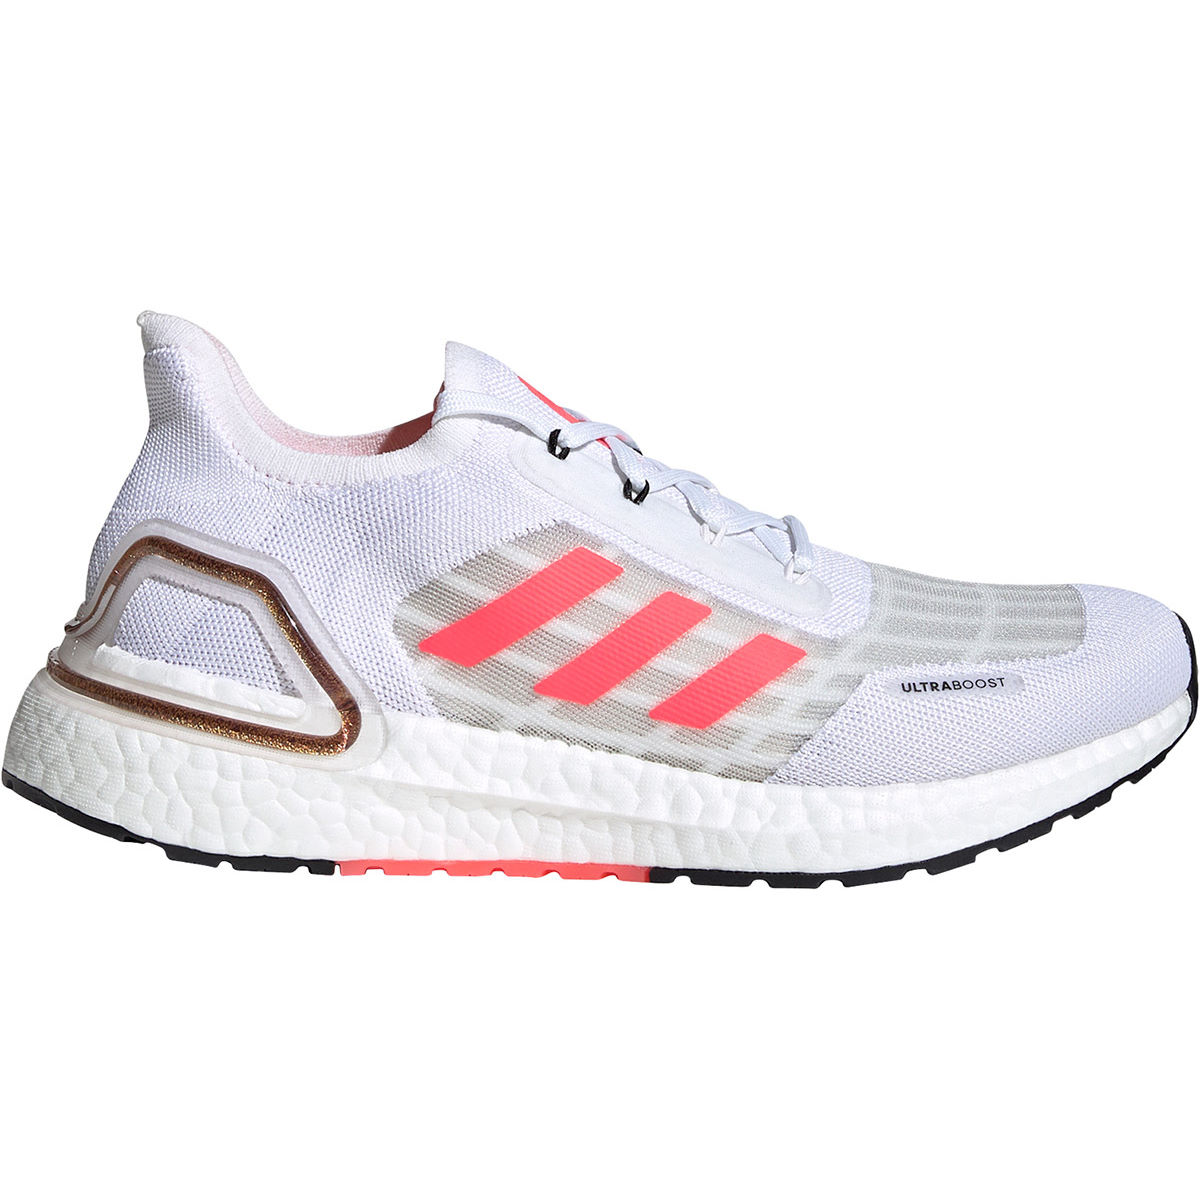 Adidas Womens Ultraboost S.rdy Running Shoes - Uk 4  Running Shoes